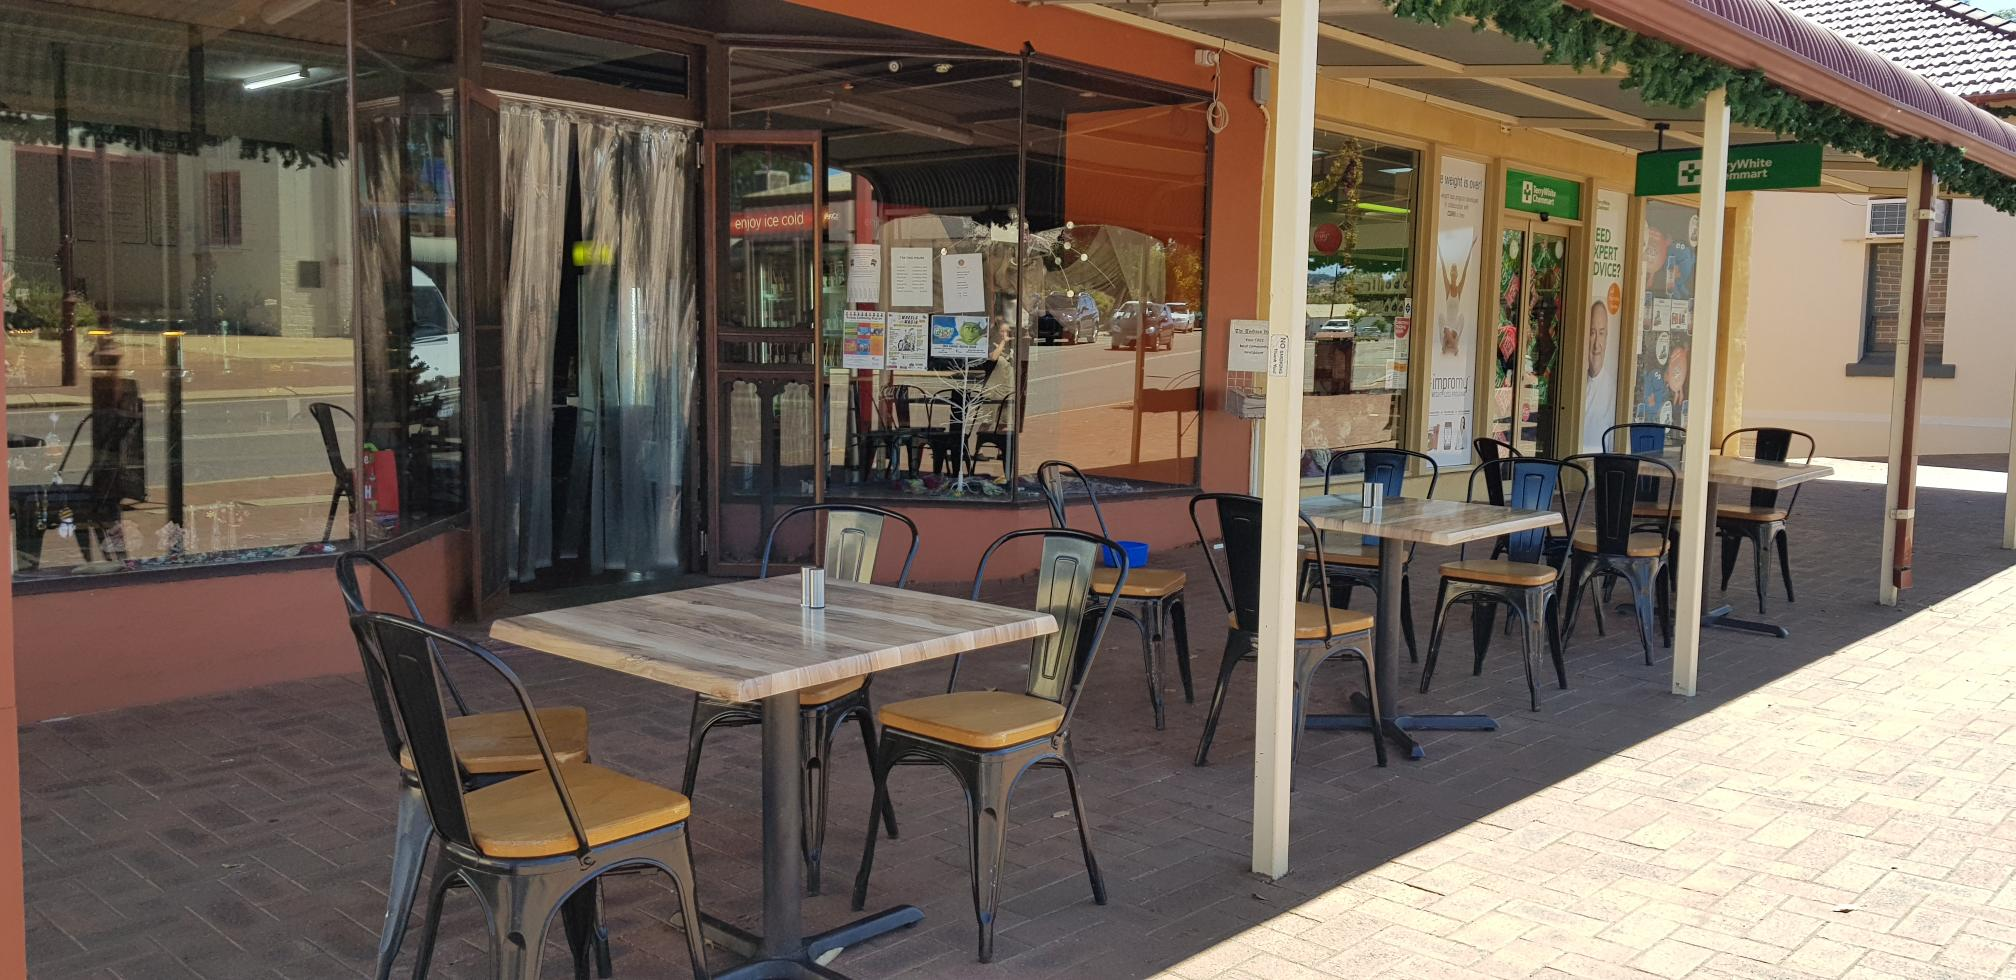 profitable Cafe / Lunch Bar / Restaurant with low rent at only $314 /Week